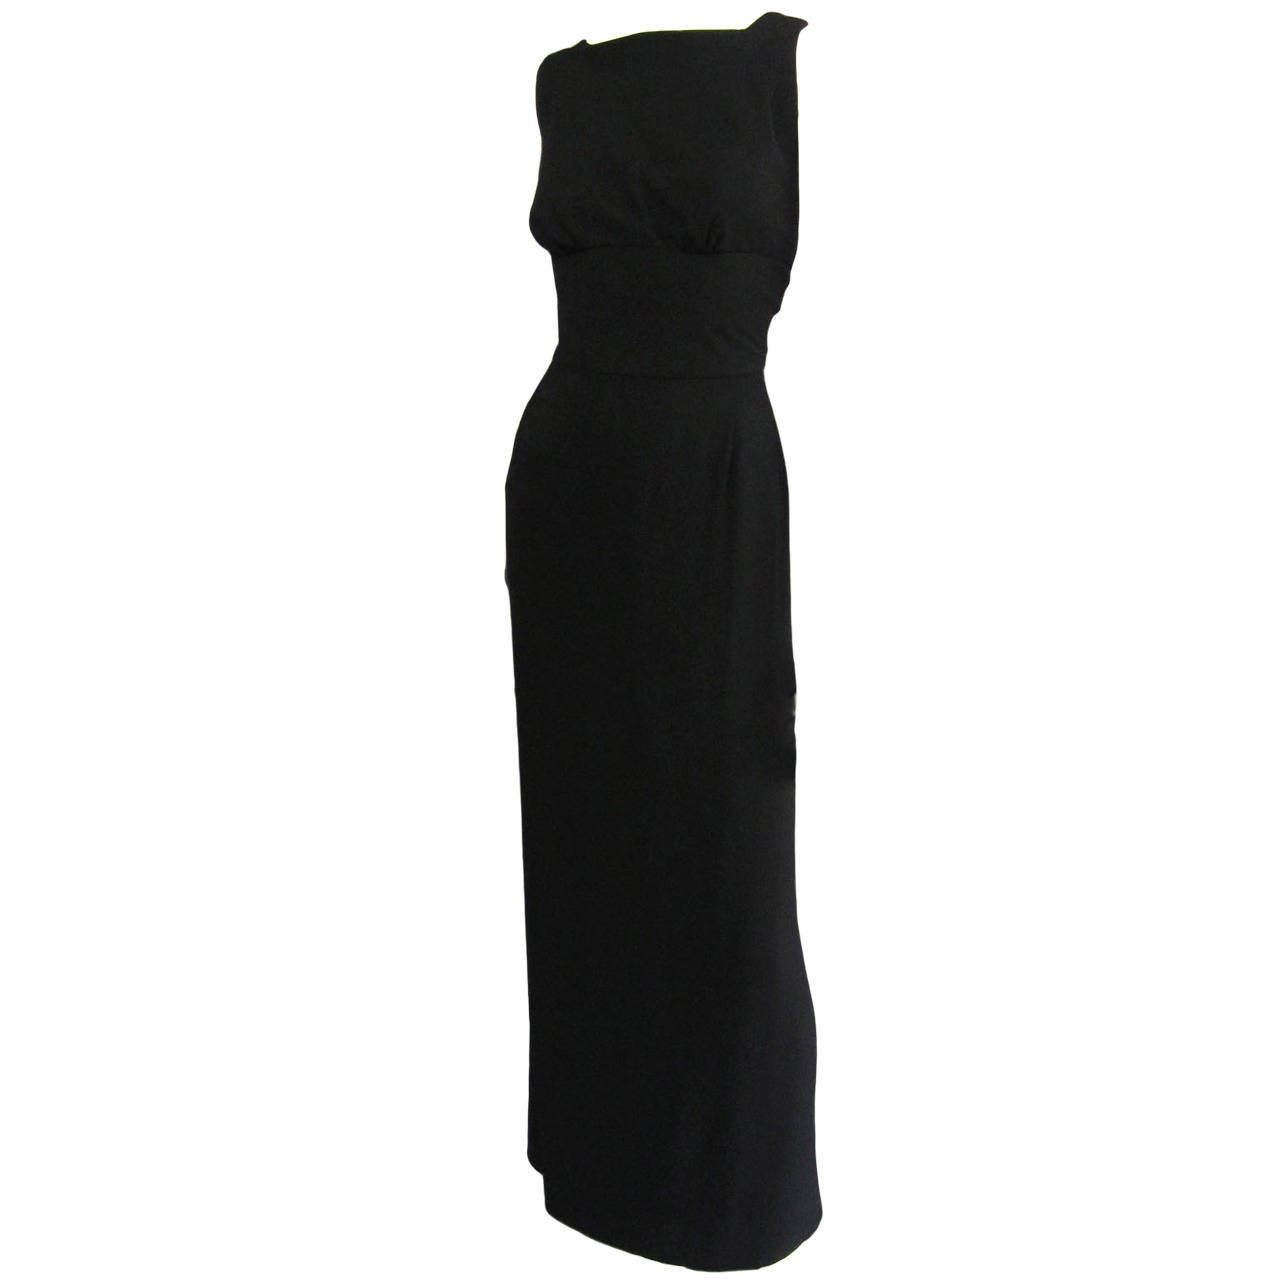 NORMAN NORELL Black Column Evening Gown with Back Tie Detail